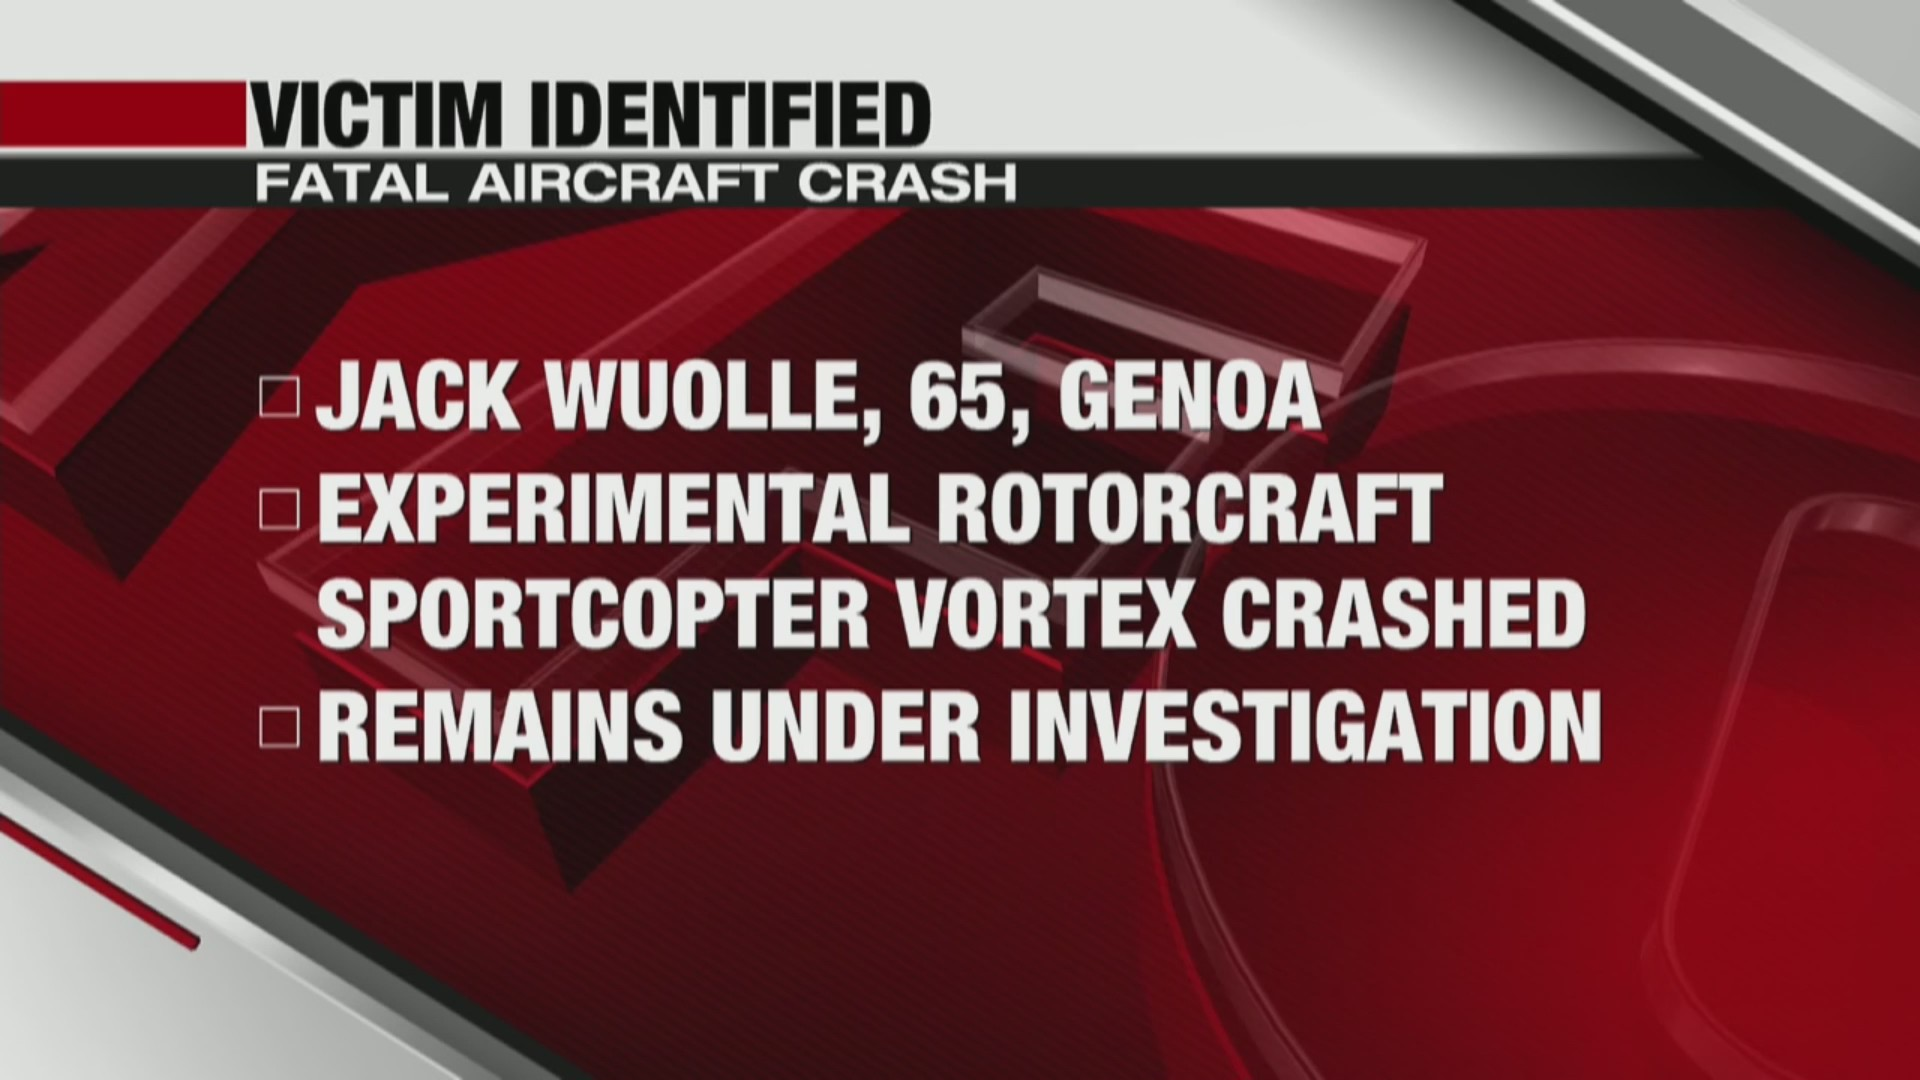 Vernon County Aircraft Accident